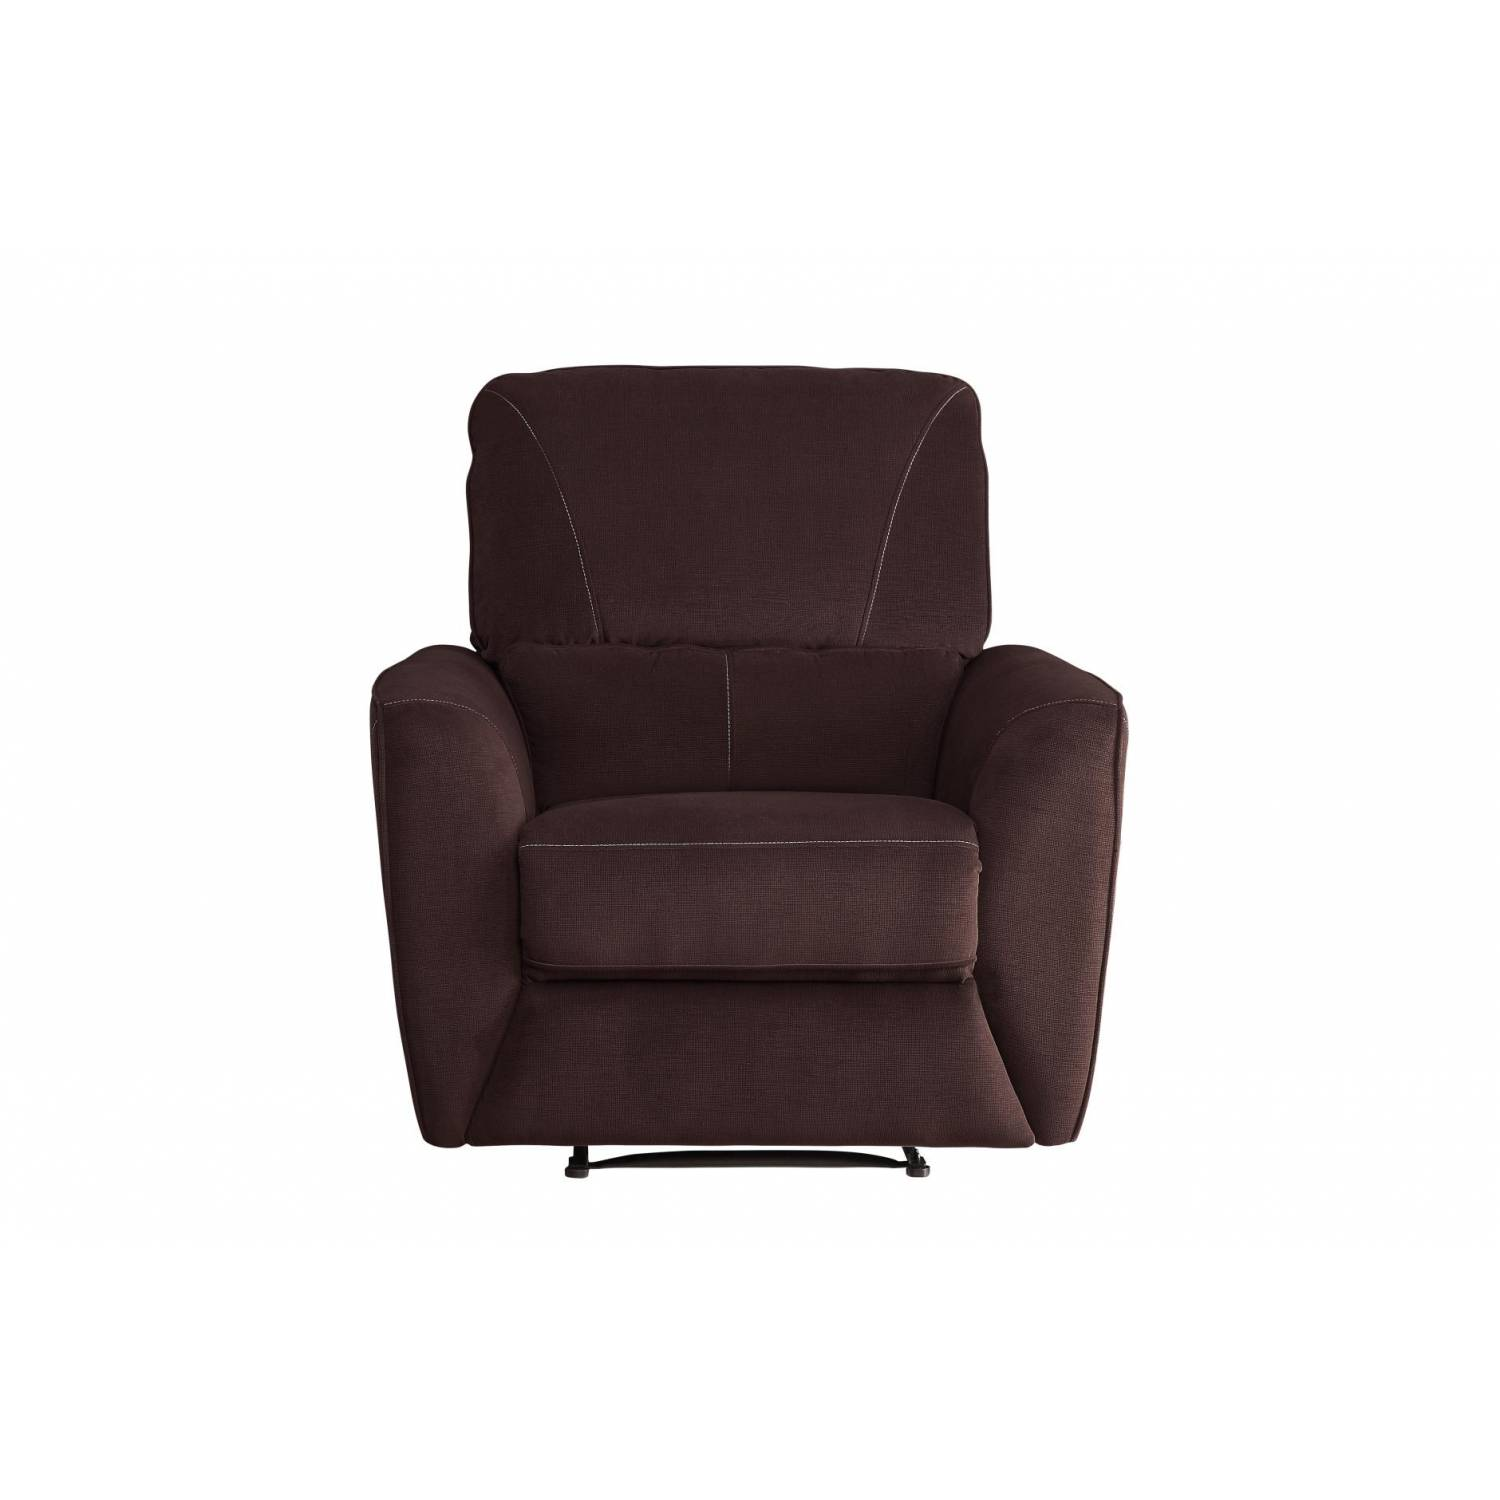 9584-1500x1500.jpg  sc 1 st  Discount Furniture Store in San Francisco & 8257BRW Dowling Double Reclining Chair